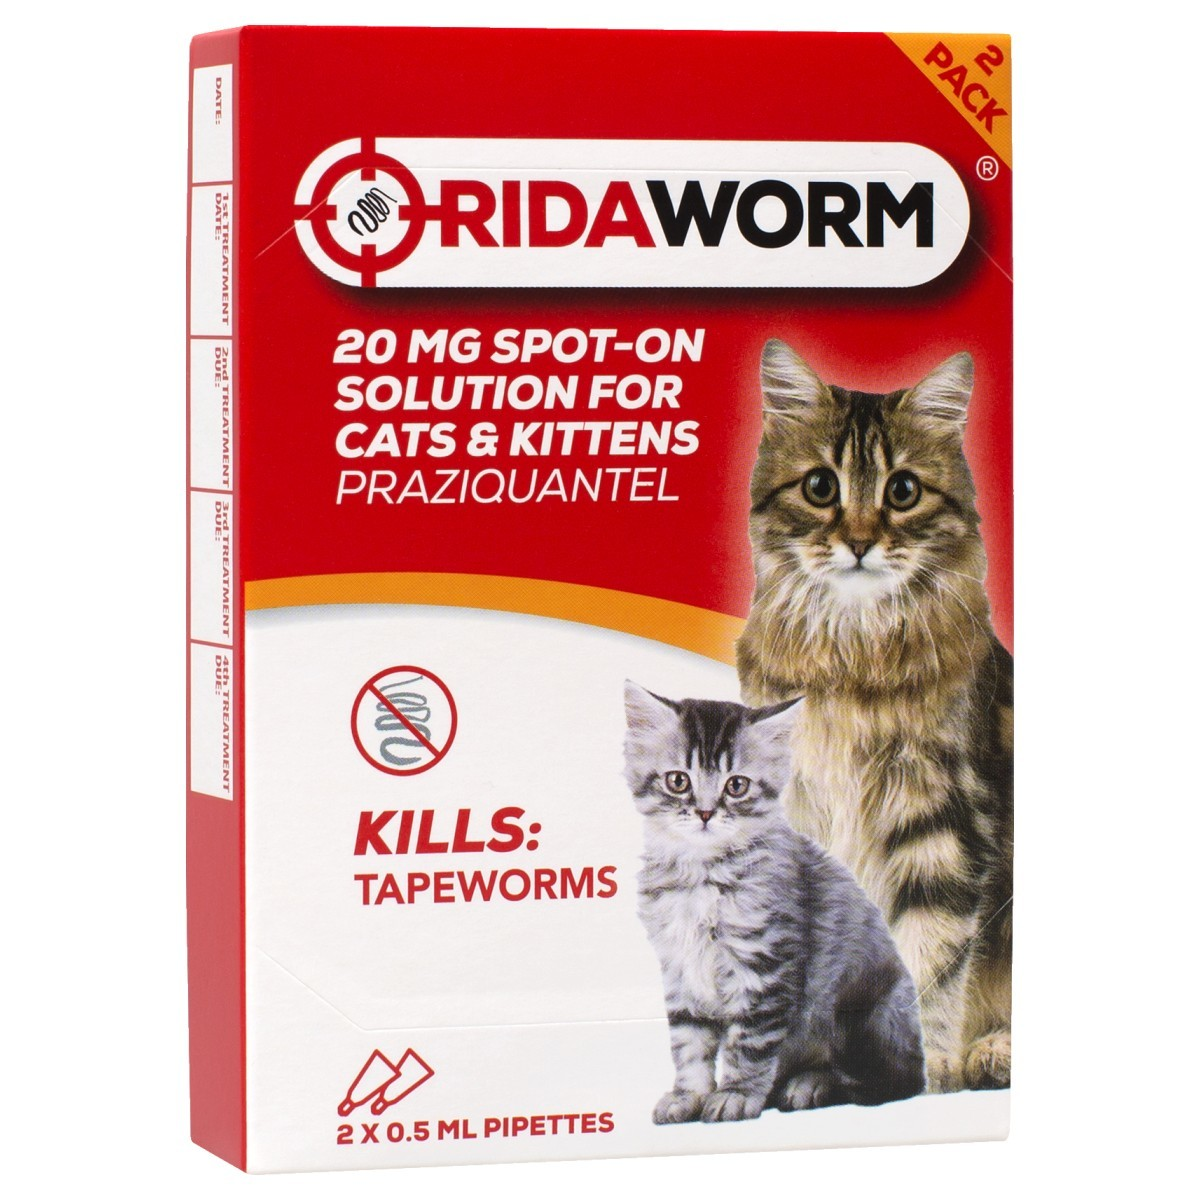 Ridaworm 20mg Spot On Wormer For Cats 2 Pack From 3 59